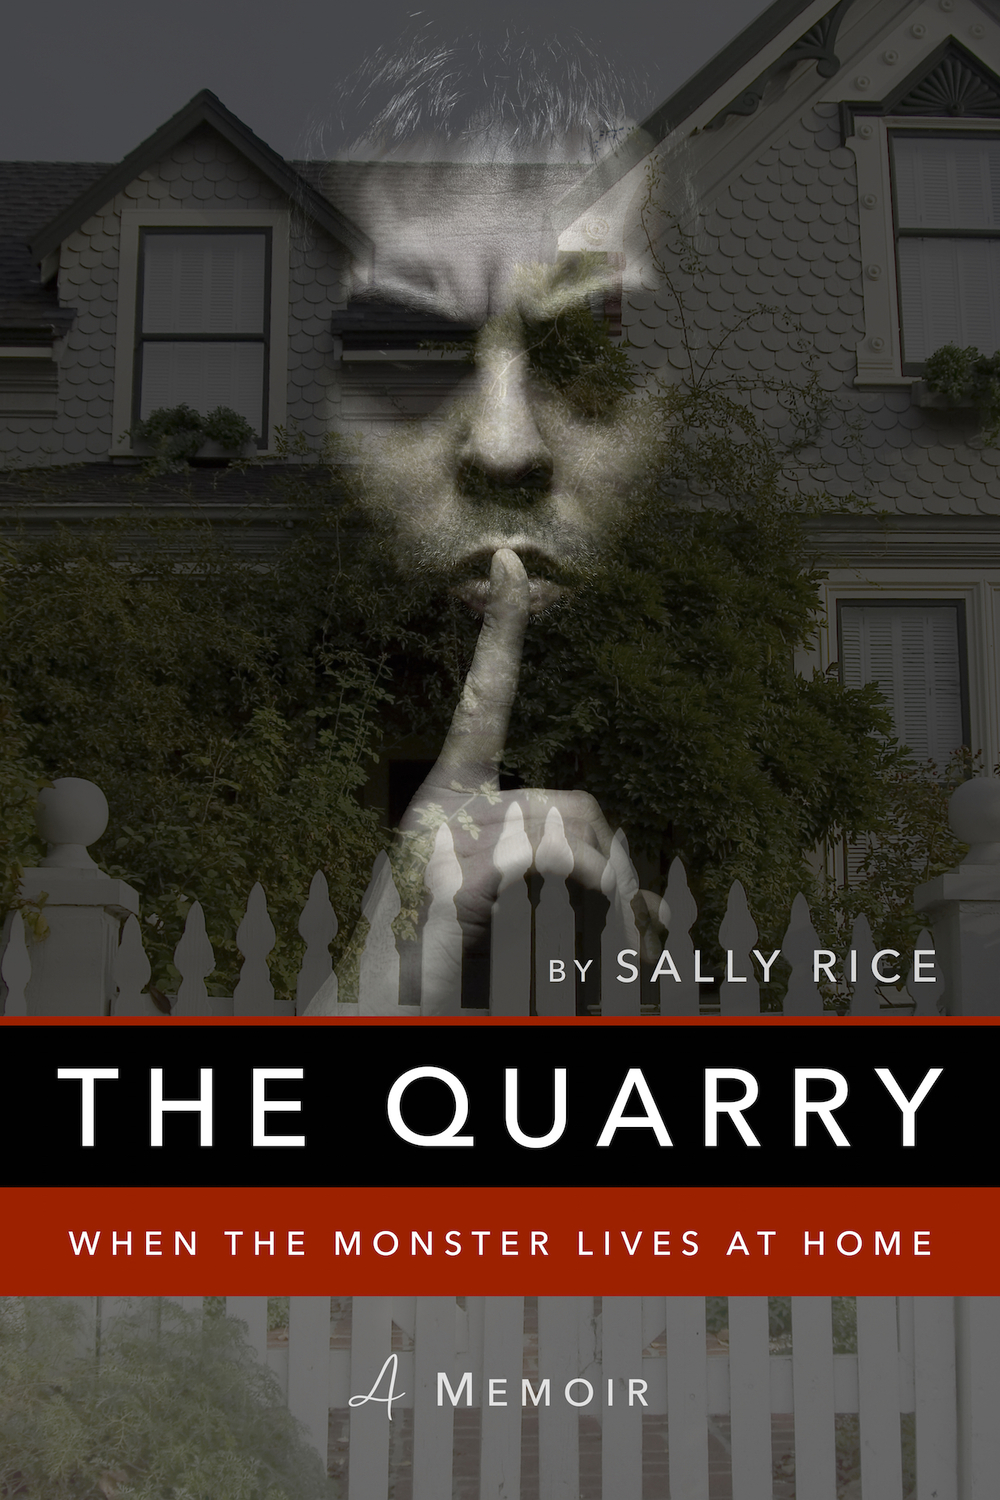 THE QUARRY - FrontCover - Final.jpg